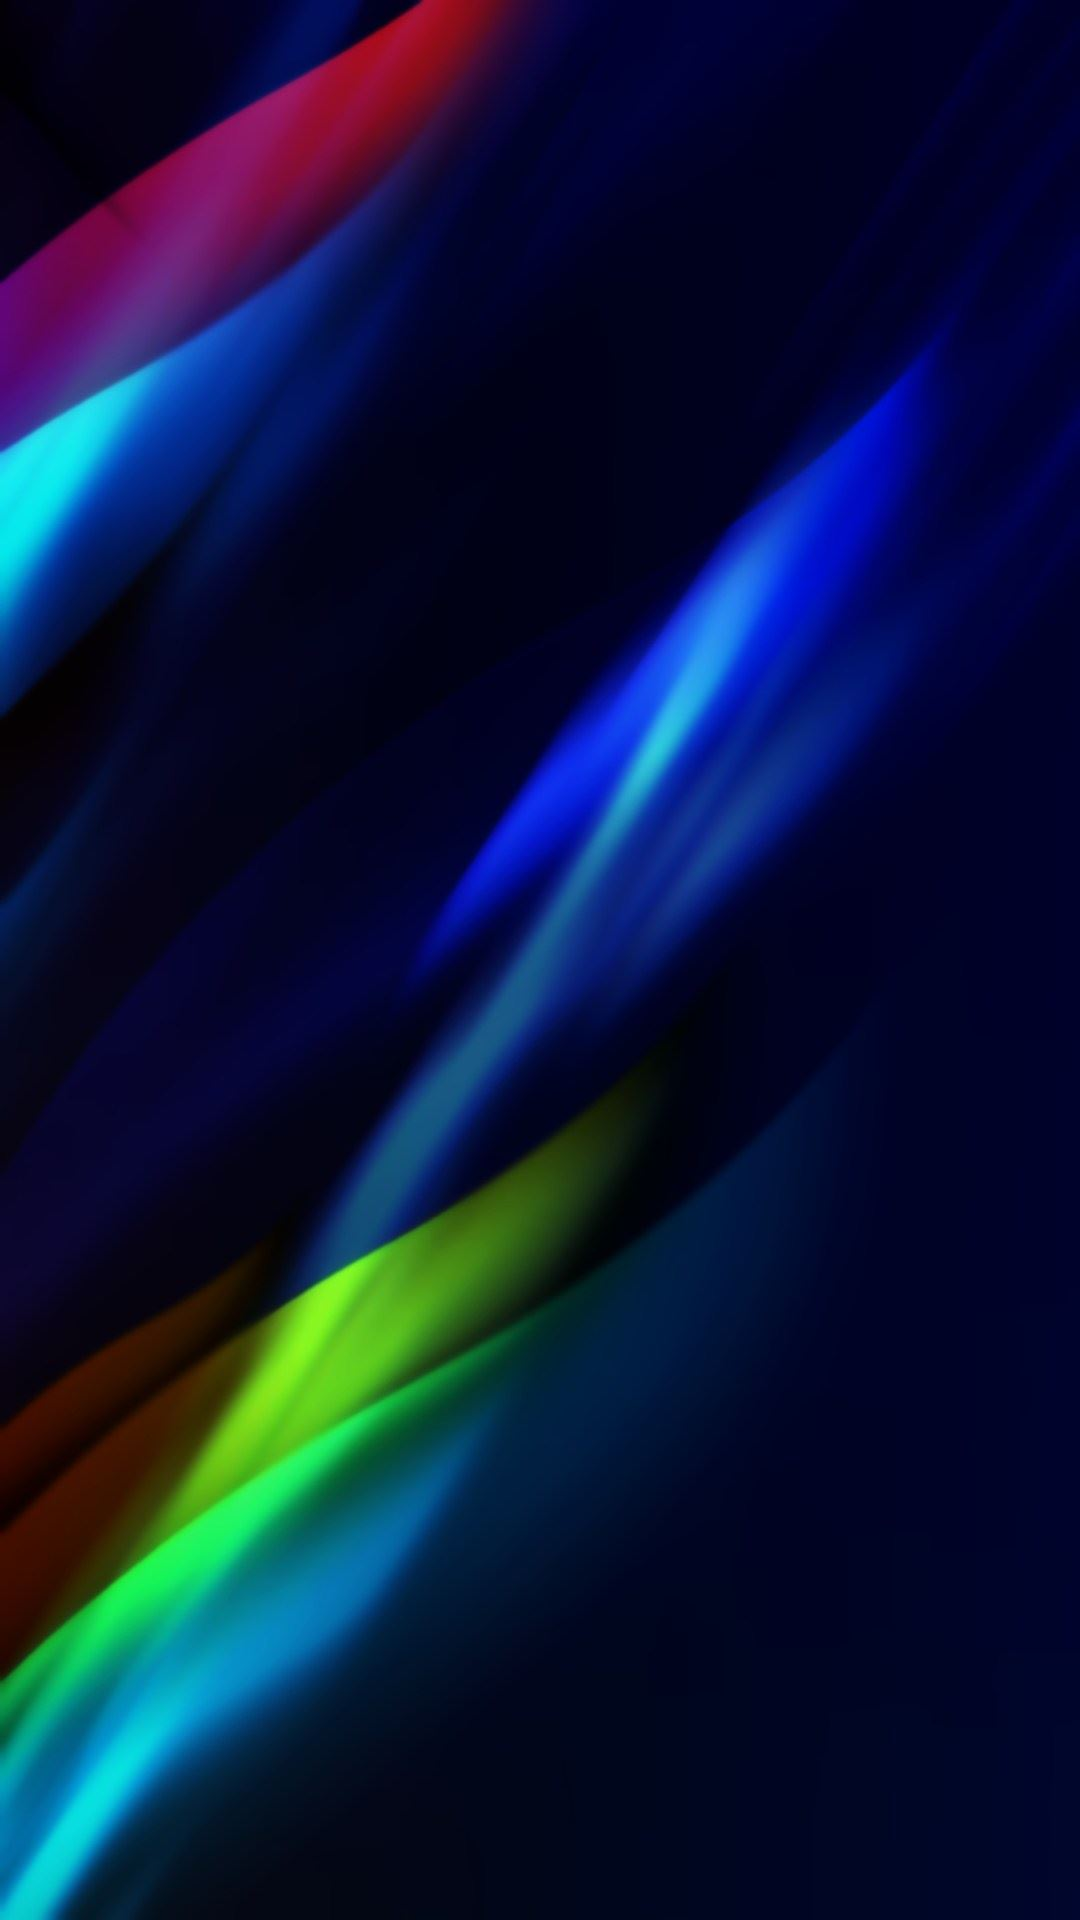 Abstract Wallpaper Android